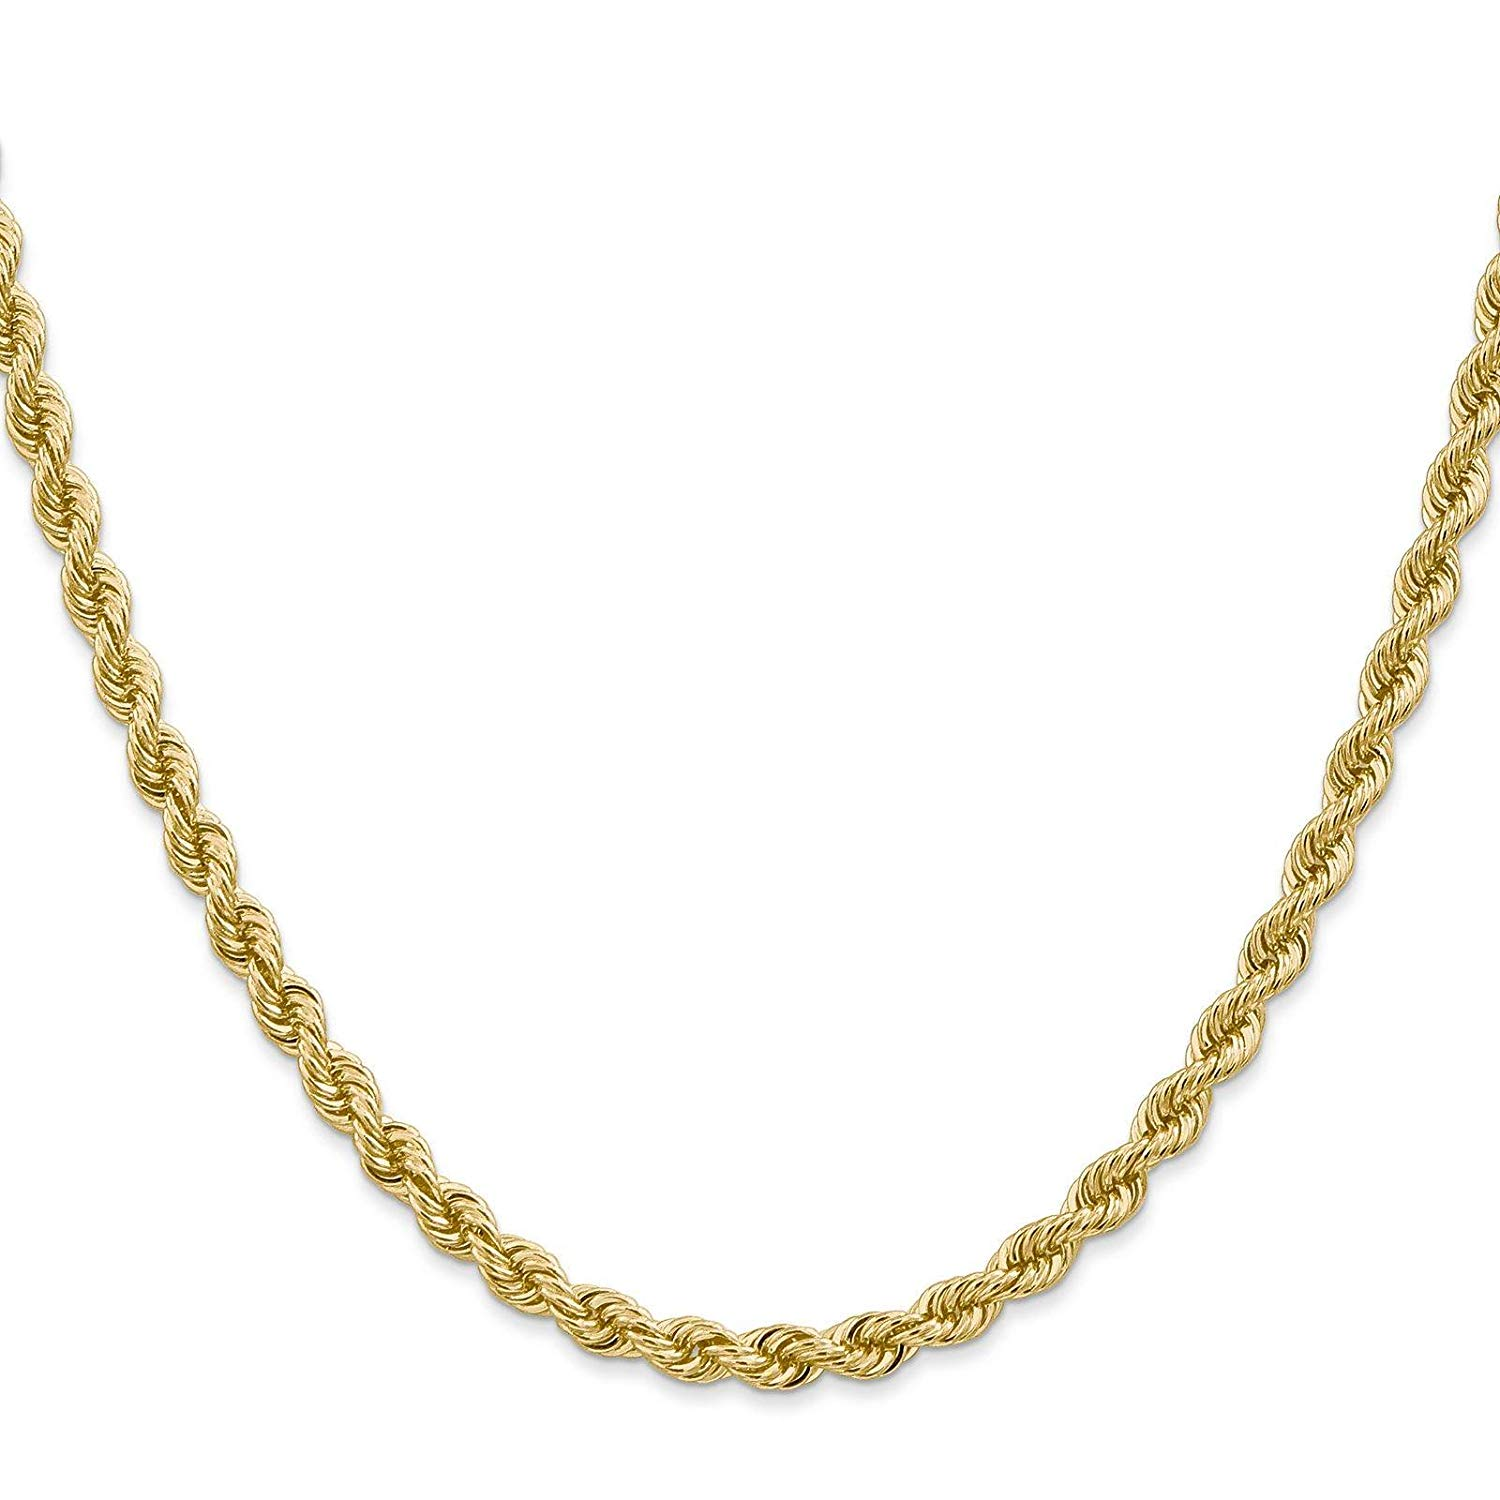 "14k Yellow Gold 4.0mm Solid Rope Chain Necklace Bracelet Anklet 7"" - 30"""